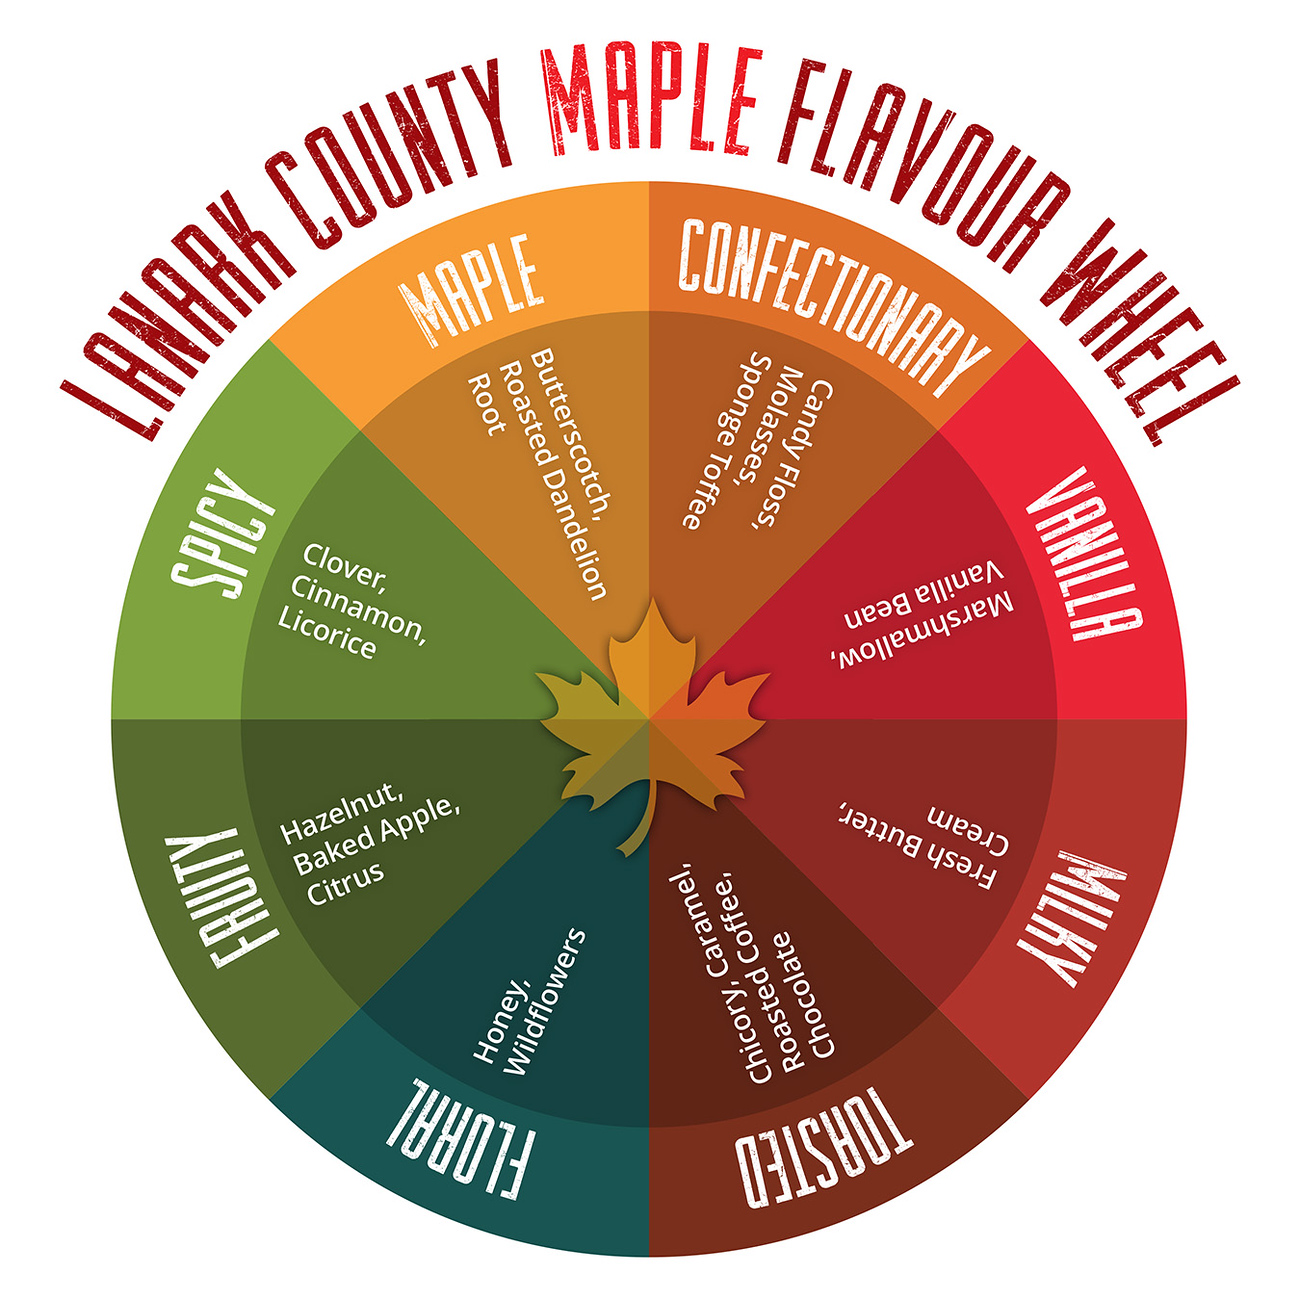 Lanark County maple flavour wheel. Discover the 13 best things to do in Lanark County.